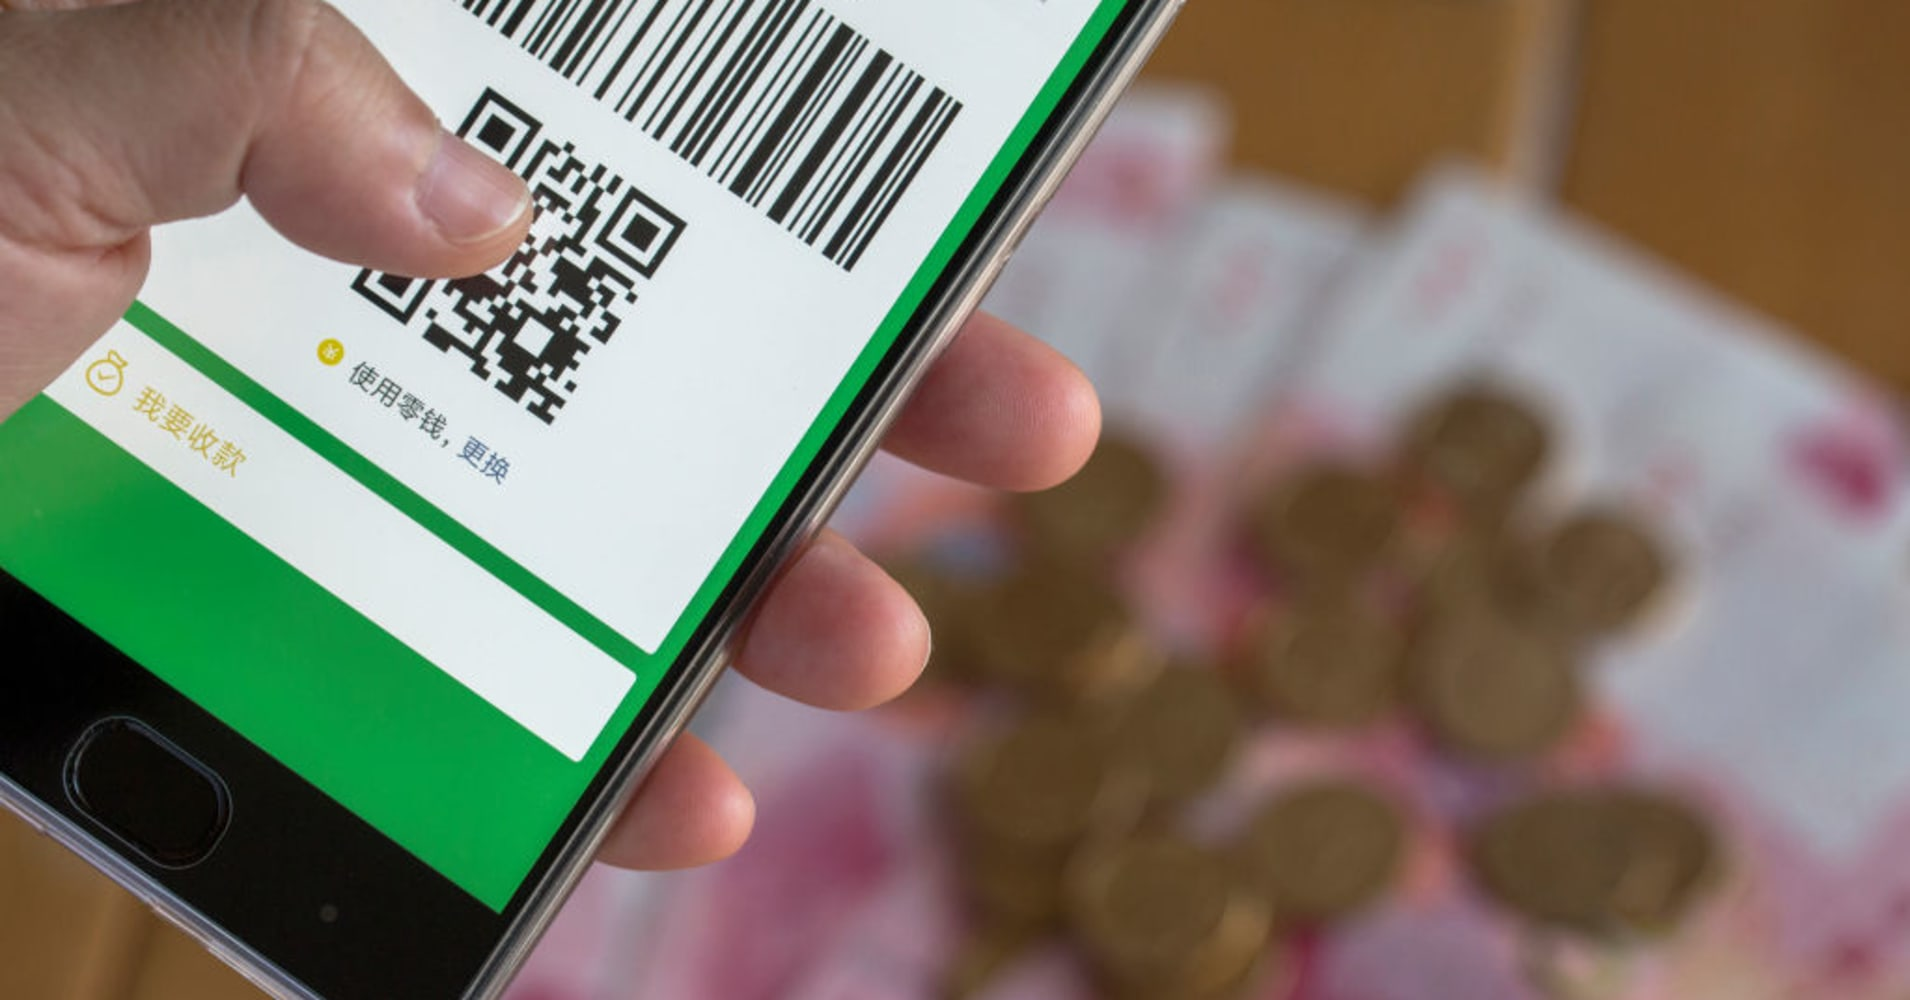 TD Ameritrade becomes first US brokerage to partner with Tencent's WeChat in America